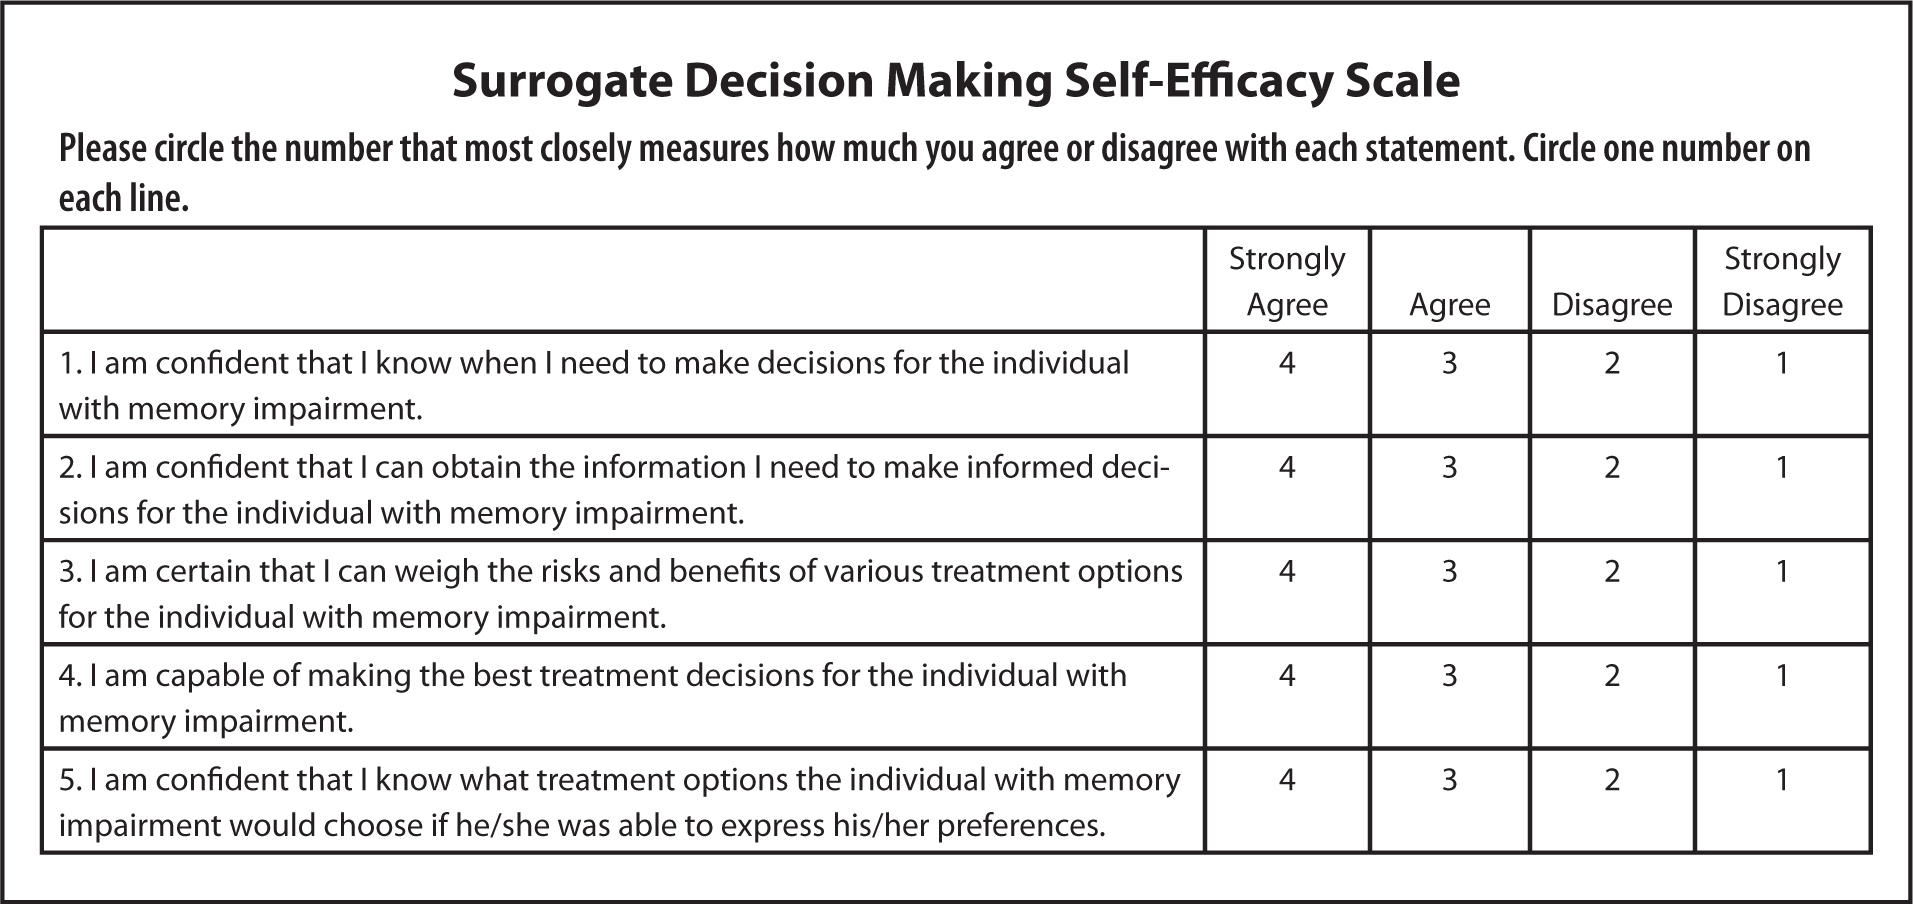 Surrogate Decision Making Self-Efficacy Scale.